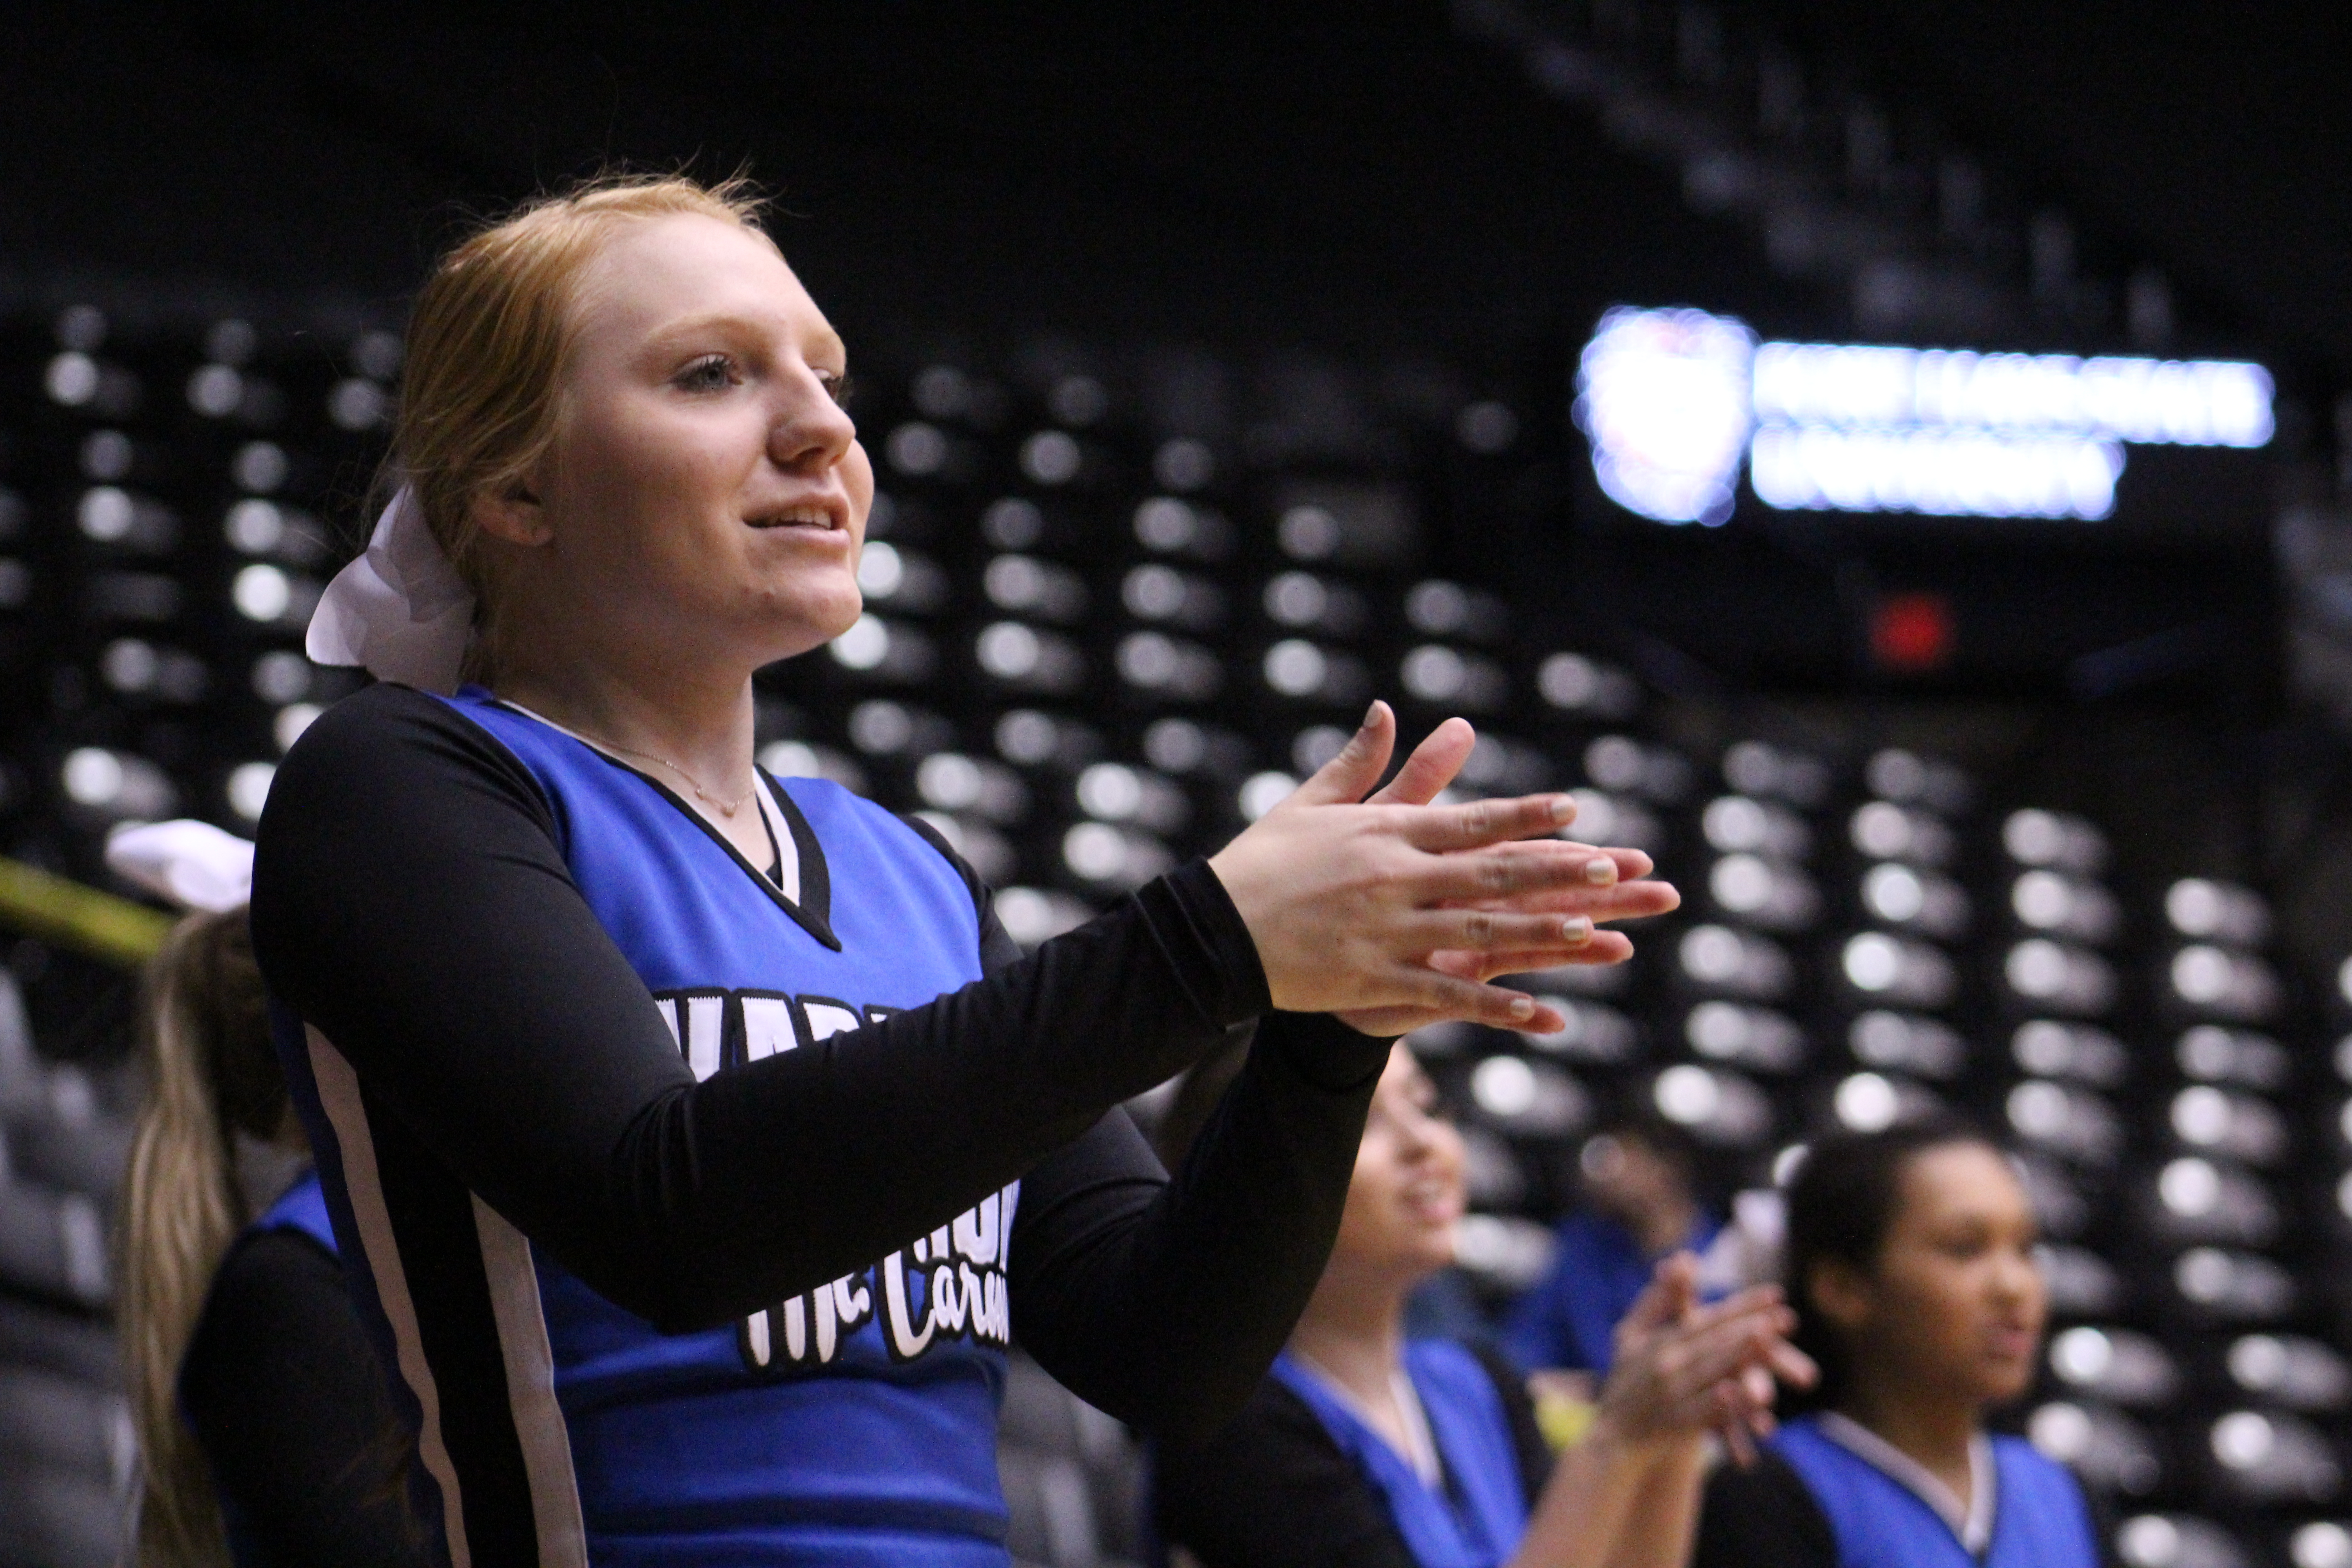 During the boys varsity basketball game, sophomore Natalie Dreher cheers after the Crusaders scored a point against Goddard Jan. 14. The boys where participating in the WATC challenge, which featured cross-conference matchups from the GWAL and the AVCTL leagues. Photo by Jillian Schmitz